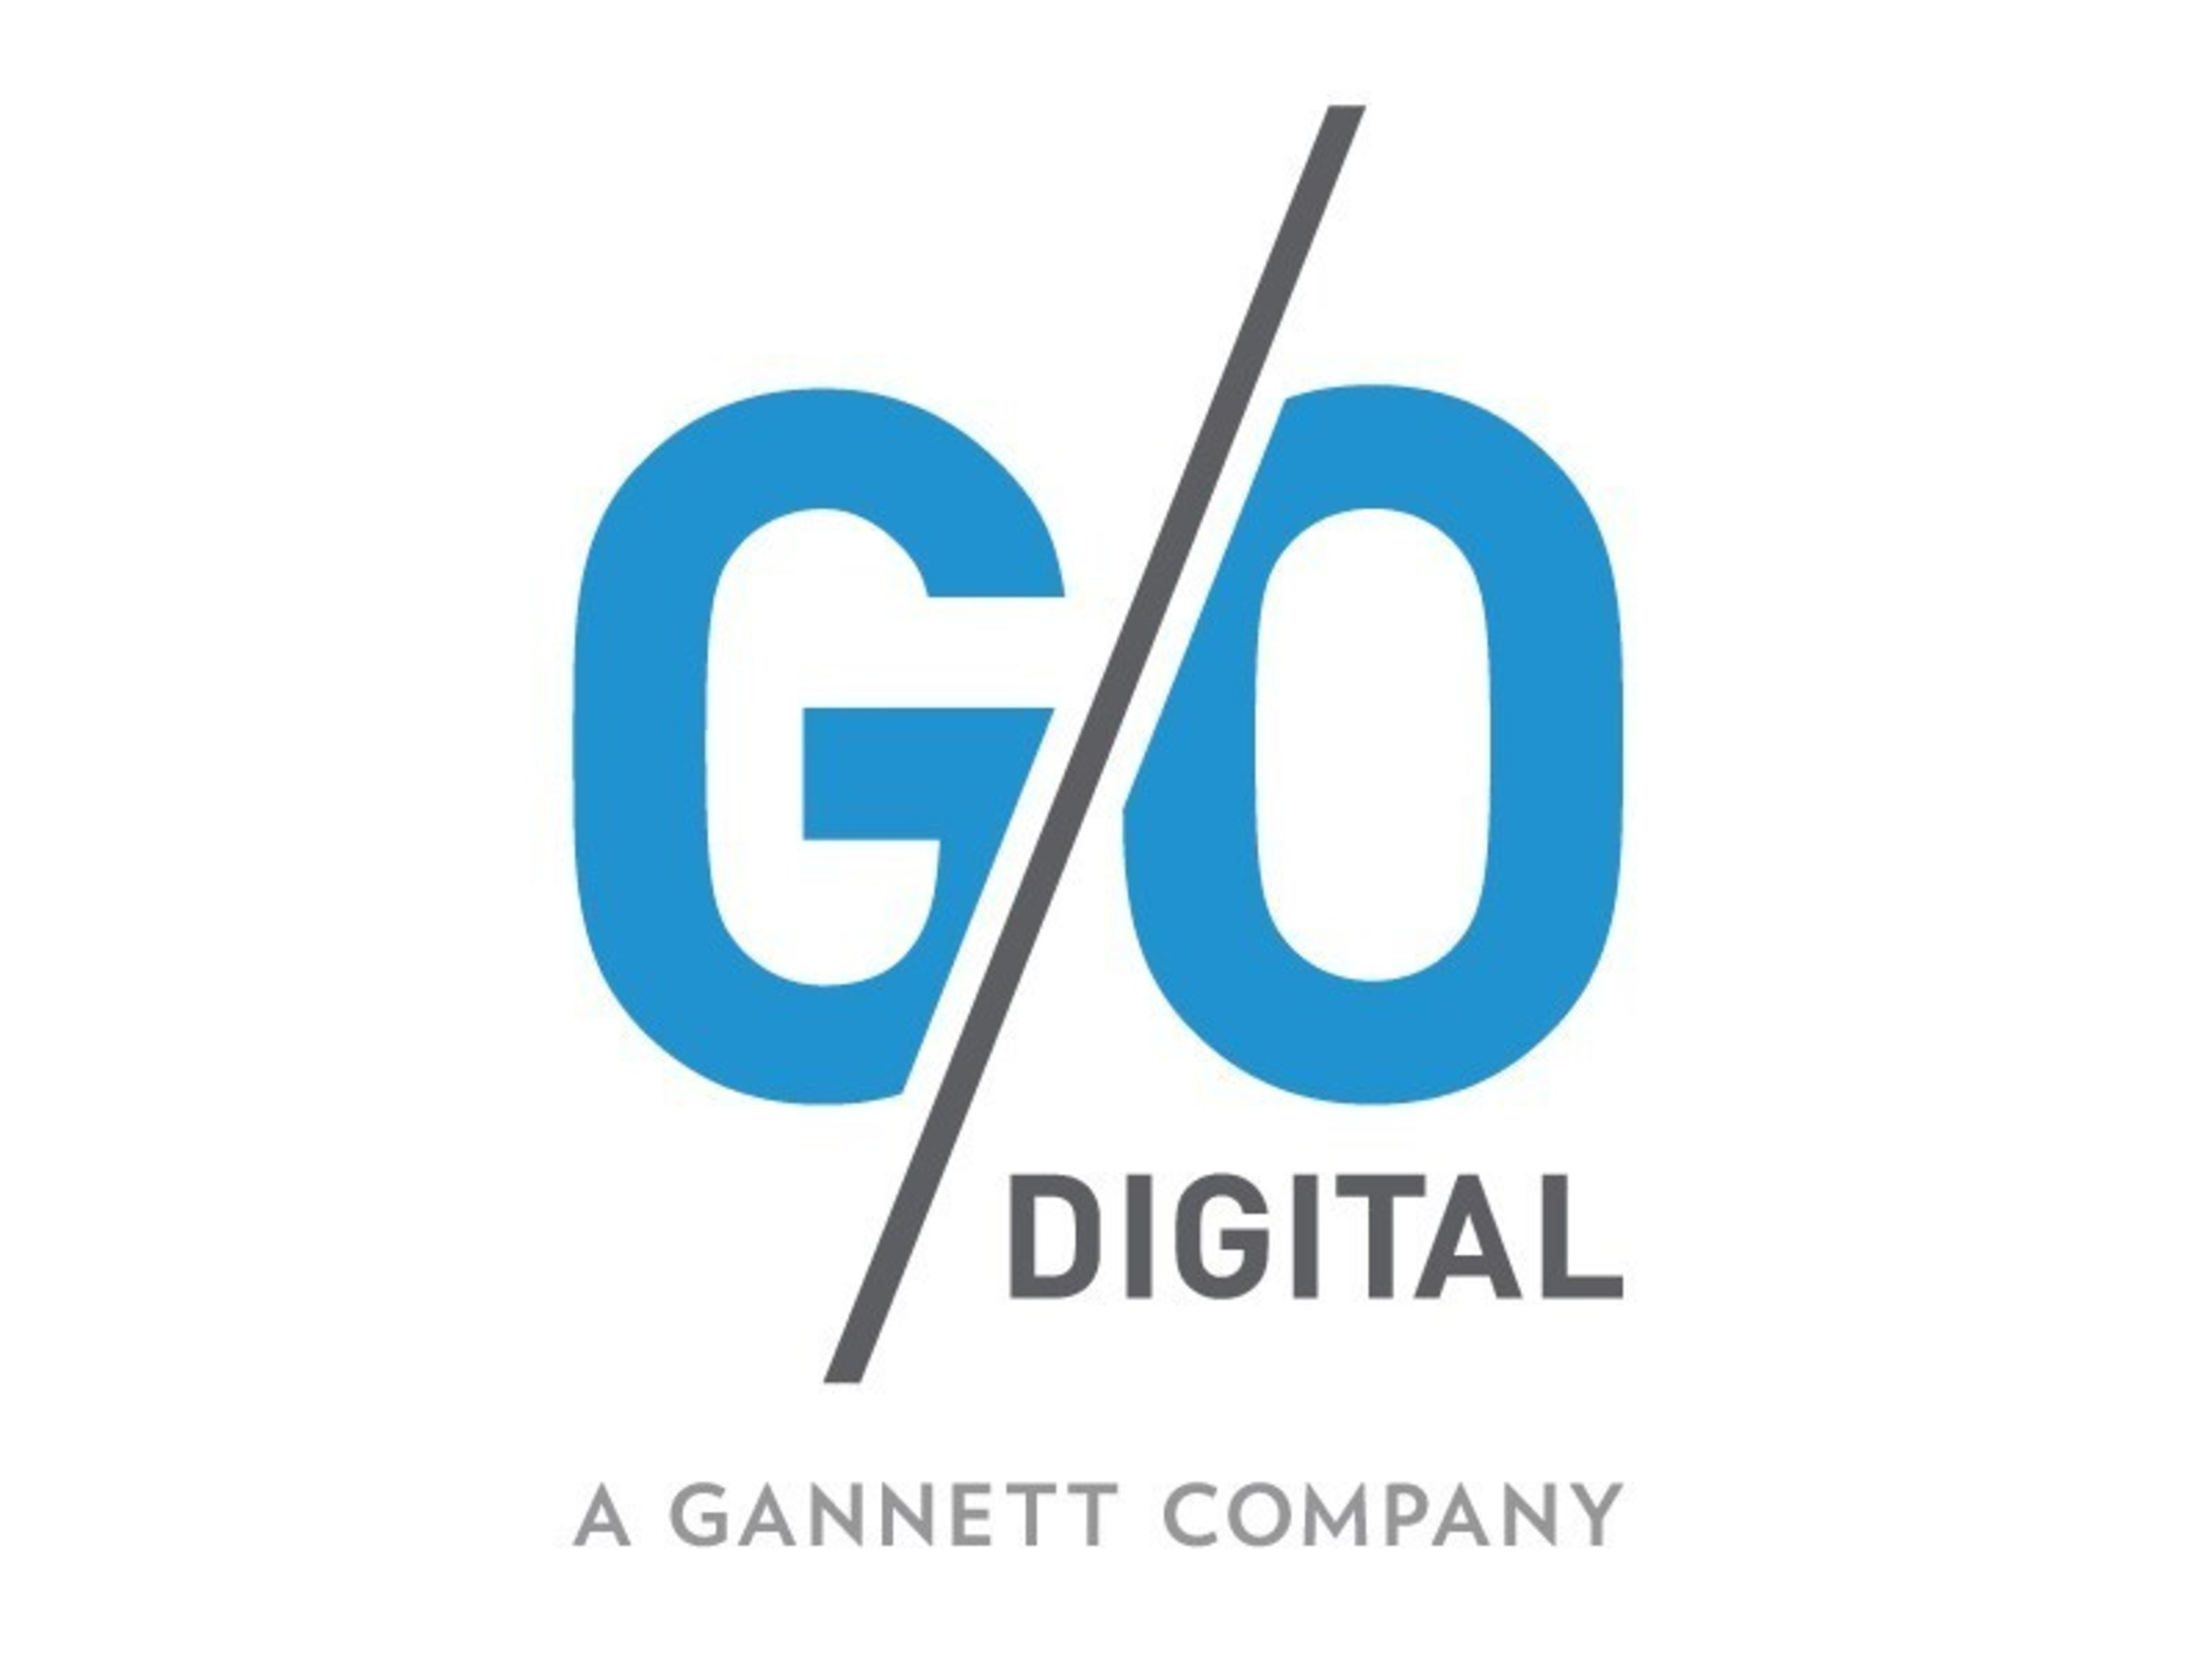 G/O Digital Forms Research-Based Relationship With Altimeter Group & Joins As Member of Interactive Advertising Bureau (IAB)